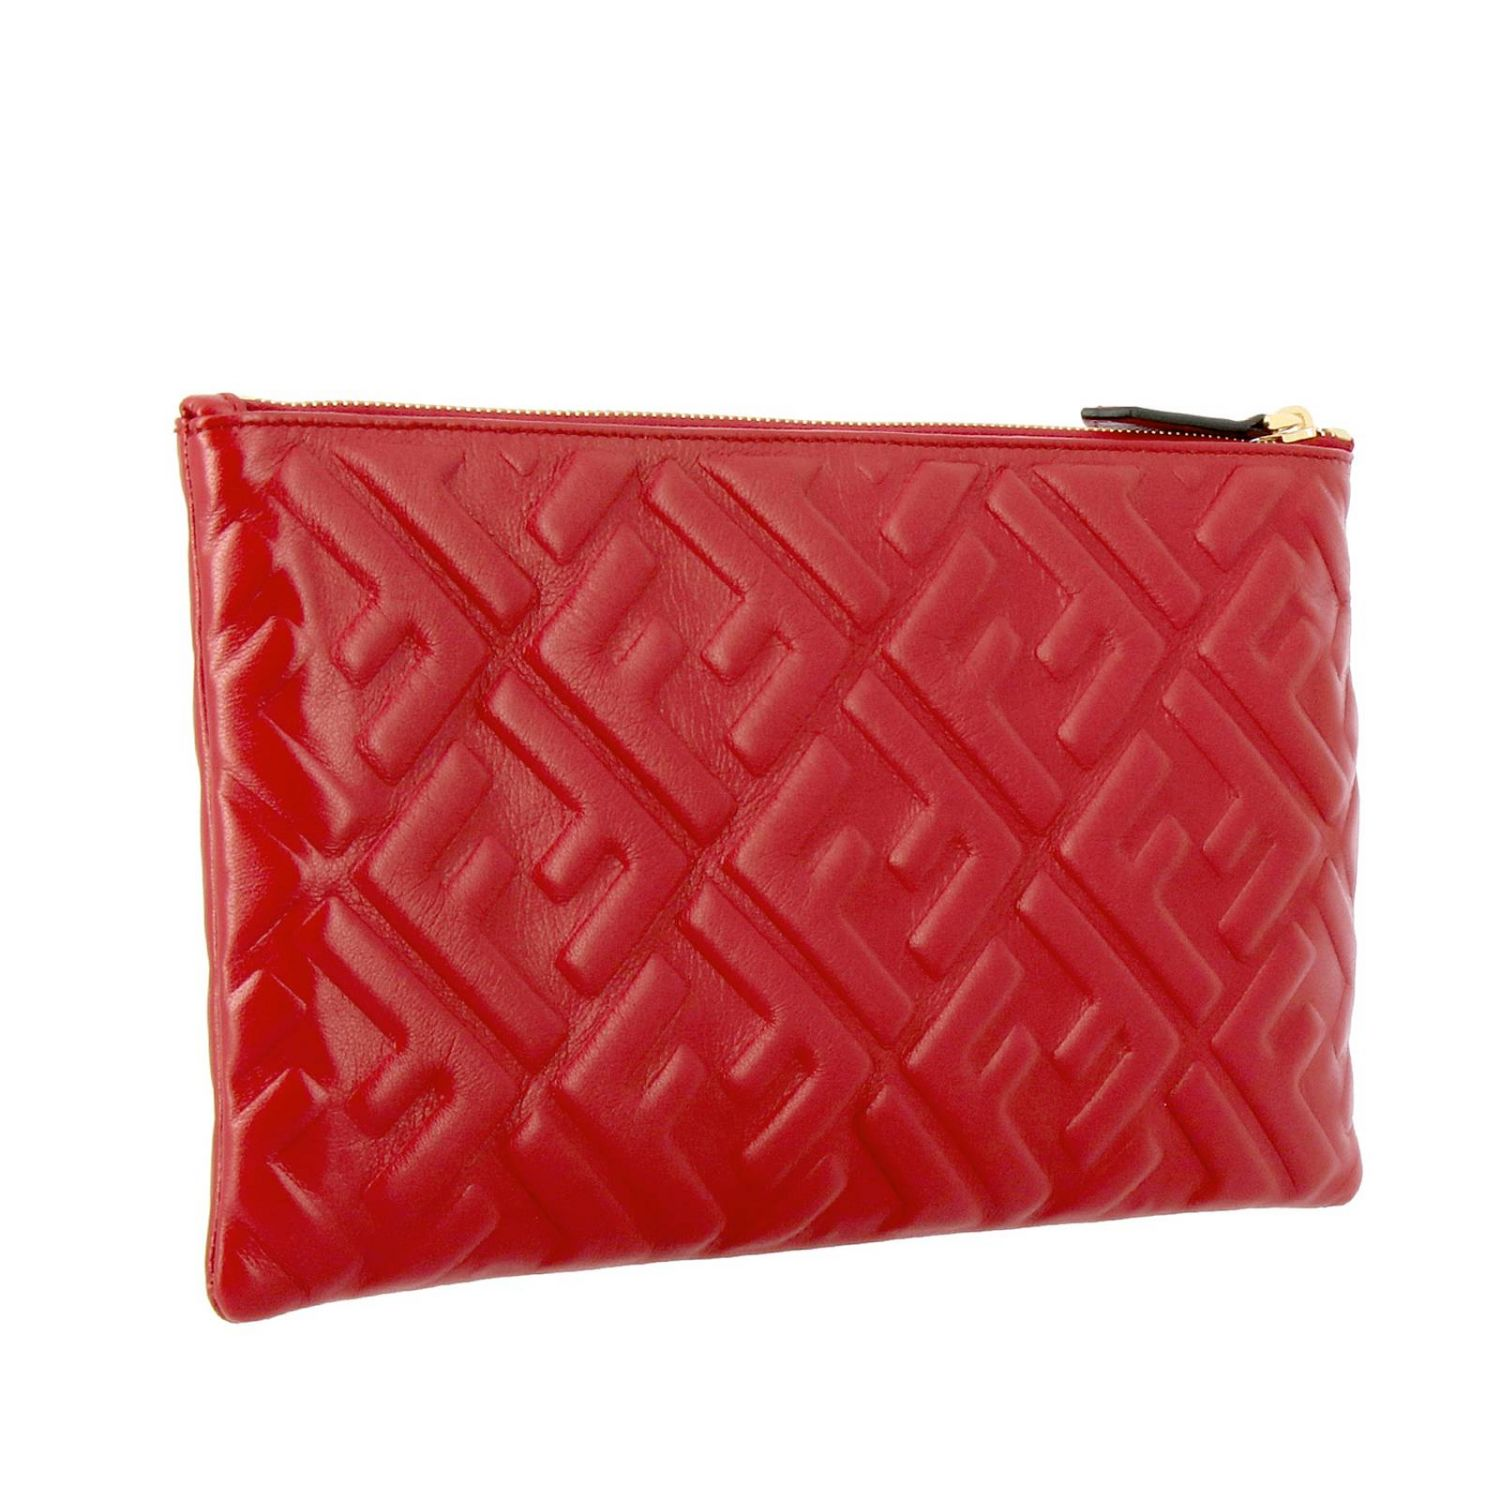 Fendi Large leather clutch bag with maxi FF monogram by Fendi embossed red 3